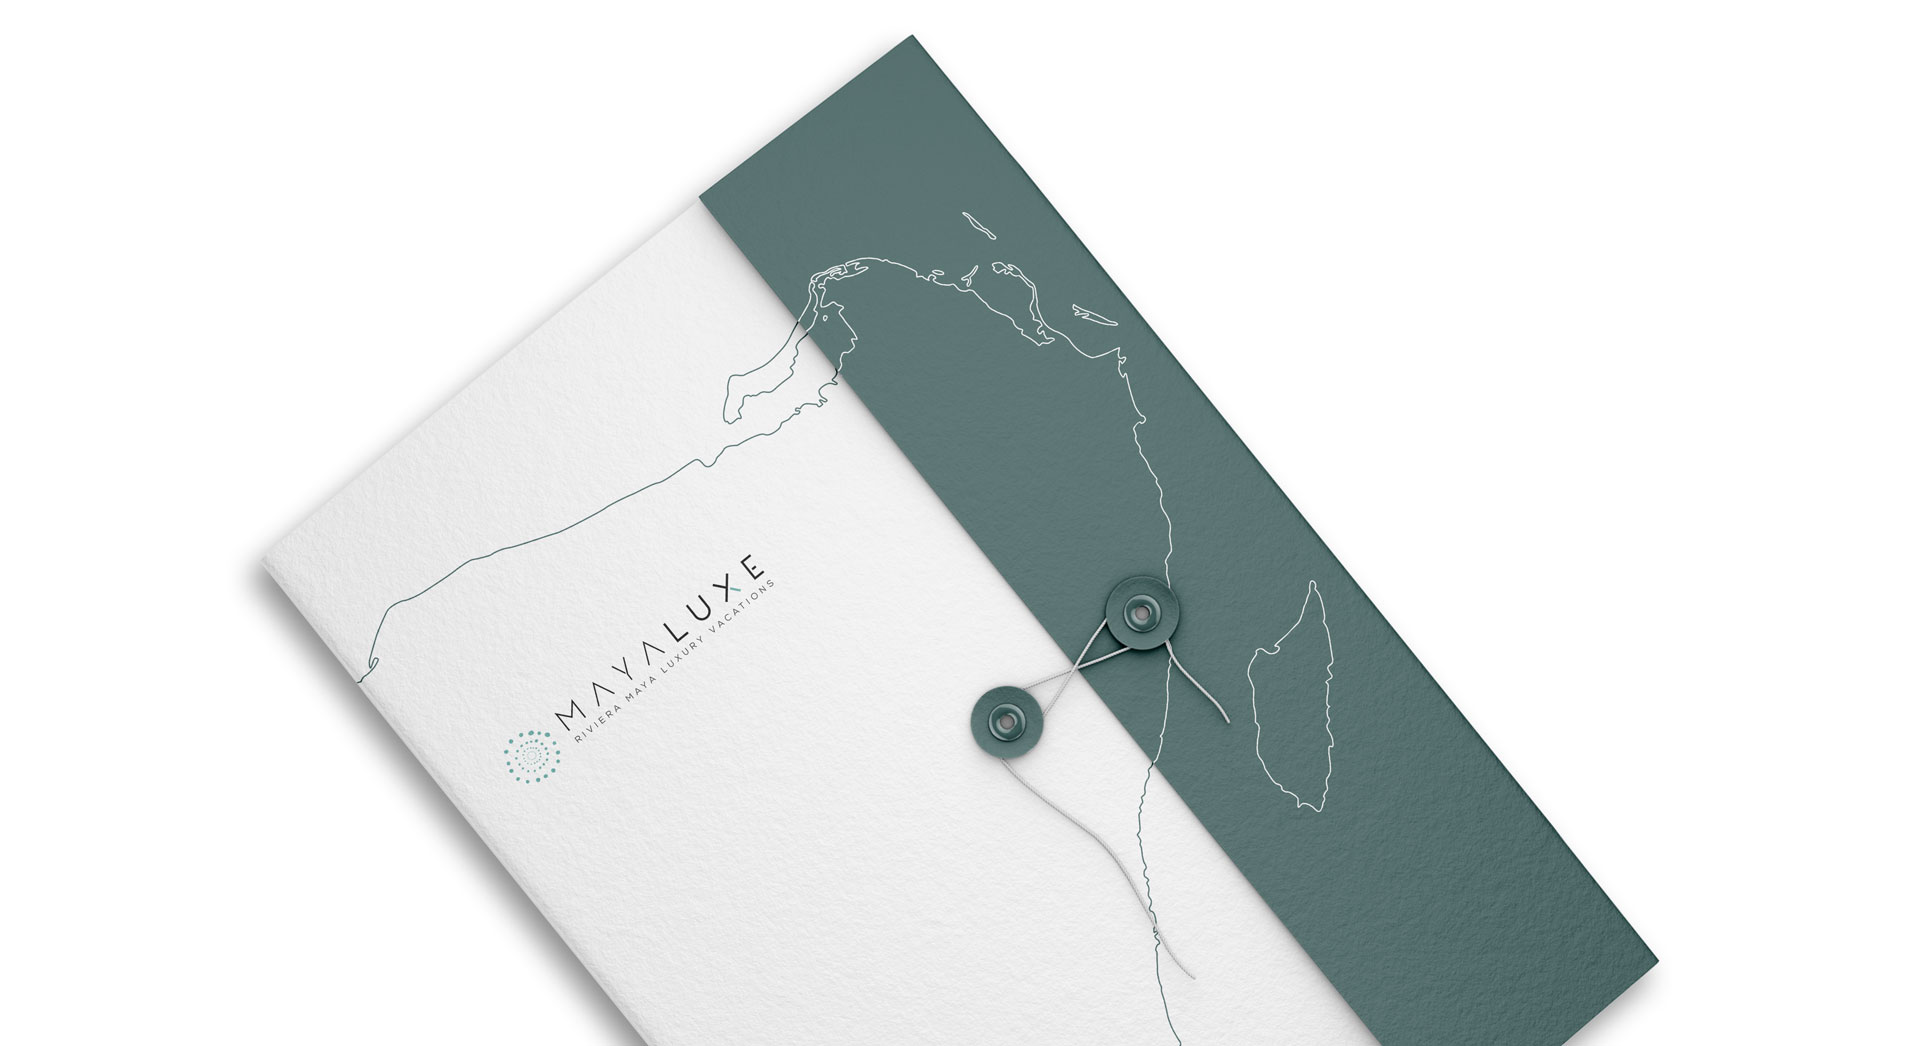 The_Ink_Collective_Maya_Luxe_Photography_Web_Design_Creative_Direction_Branding_Full_Spread_16.jpg